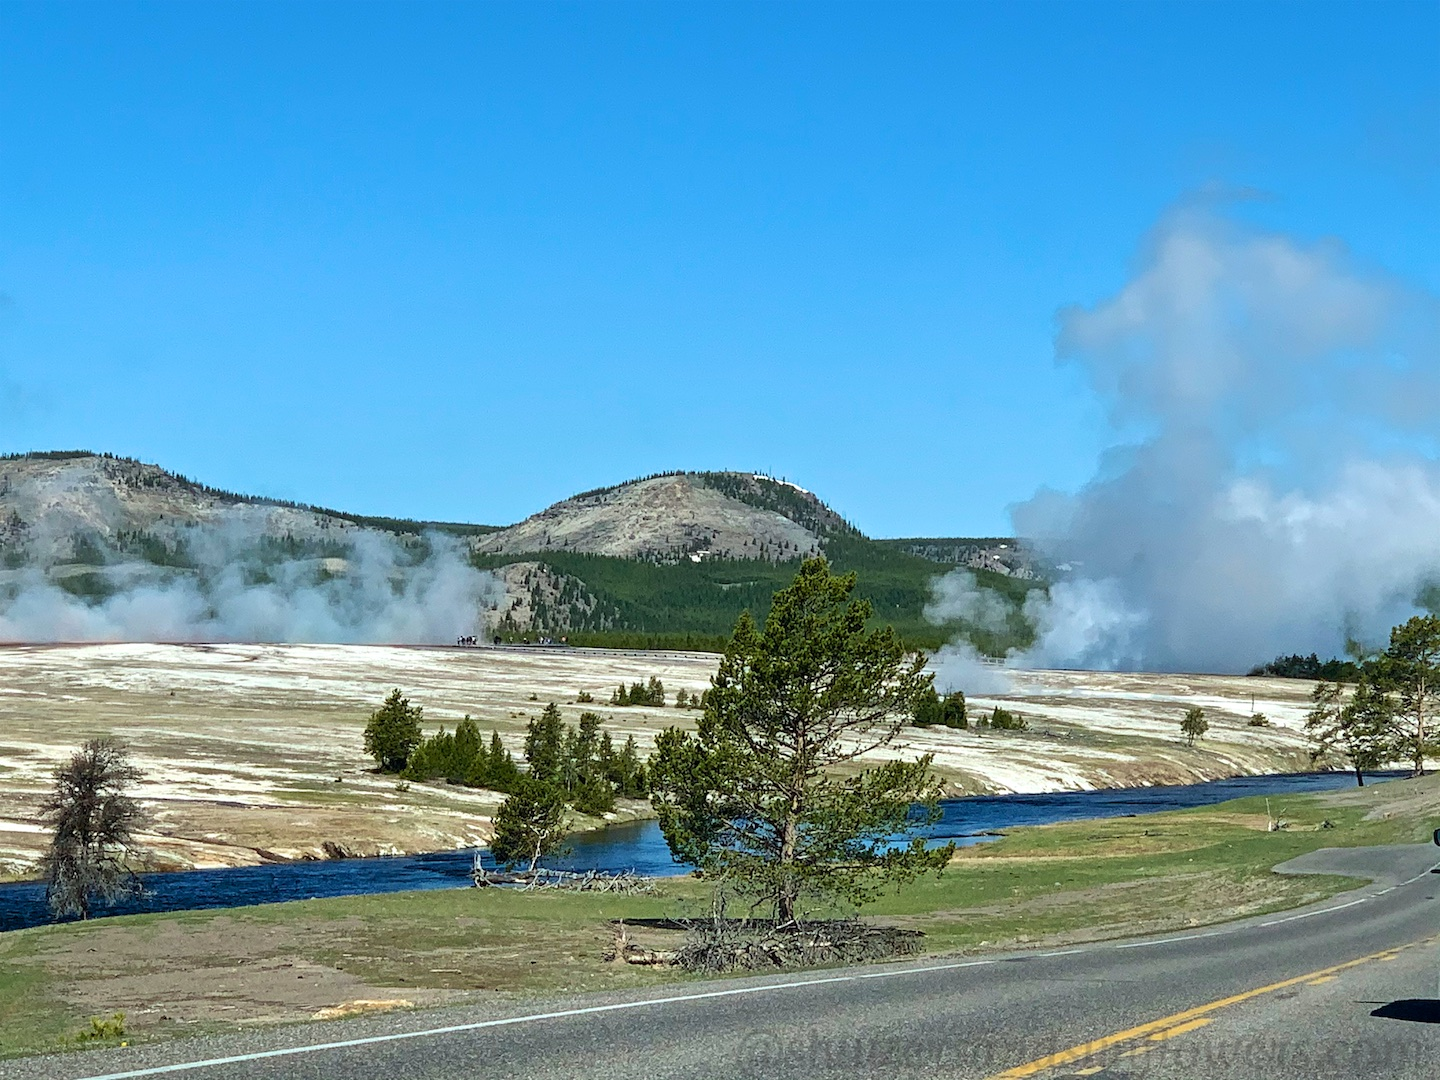 The Midway Geyser Basin, Yellowstone National Park, USA